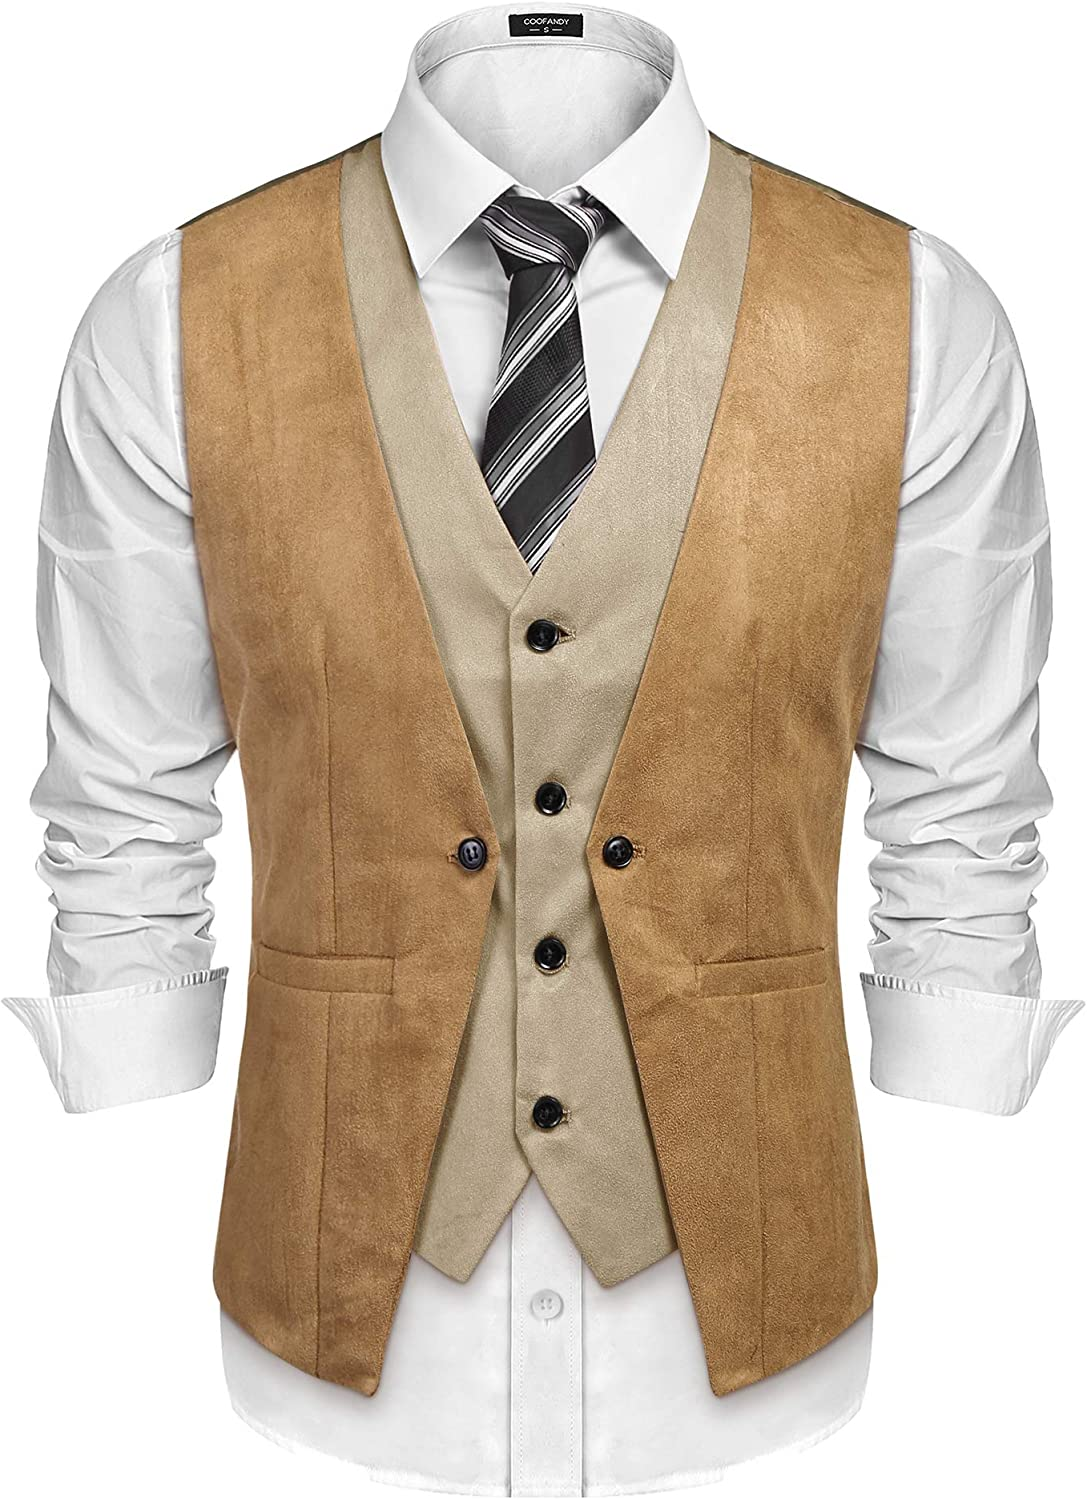 COOFANDY Men's Suede Leather Vest Style Dress Waist Layered Gifts Ranking TOP1